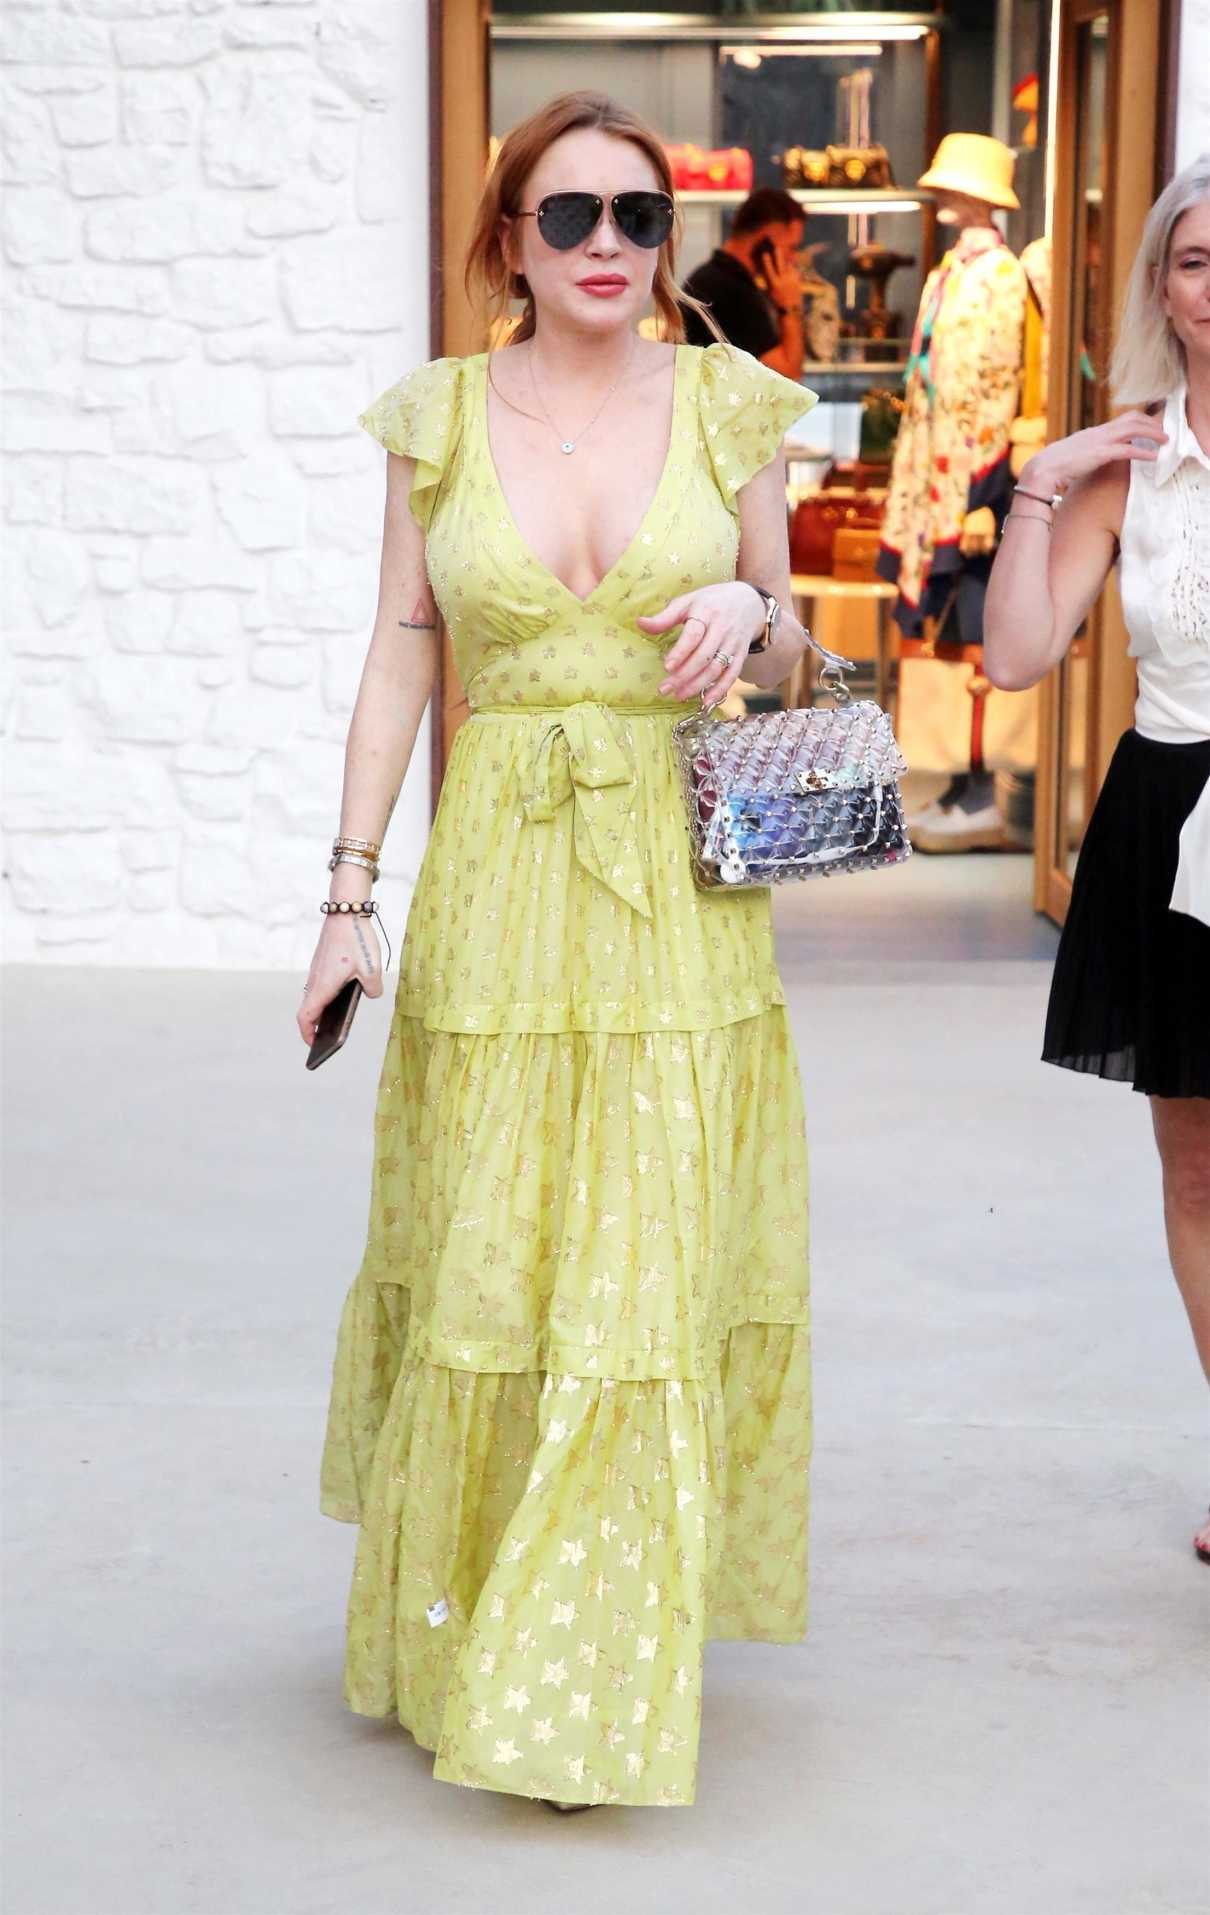 Lindsay Lohan in a Yellow Dress